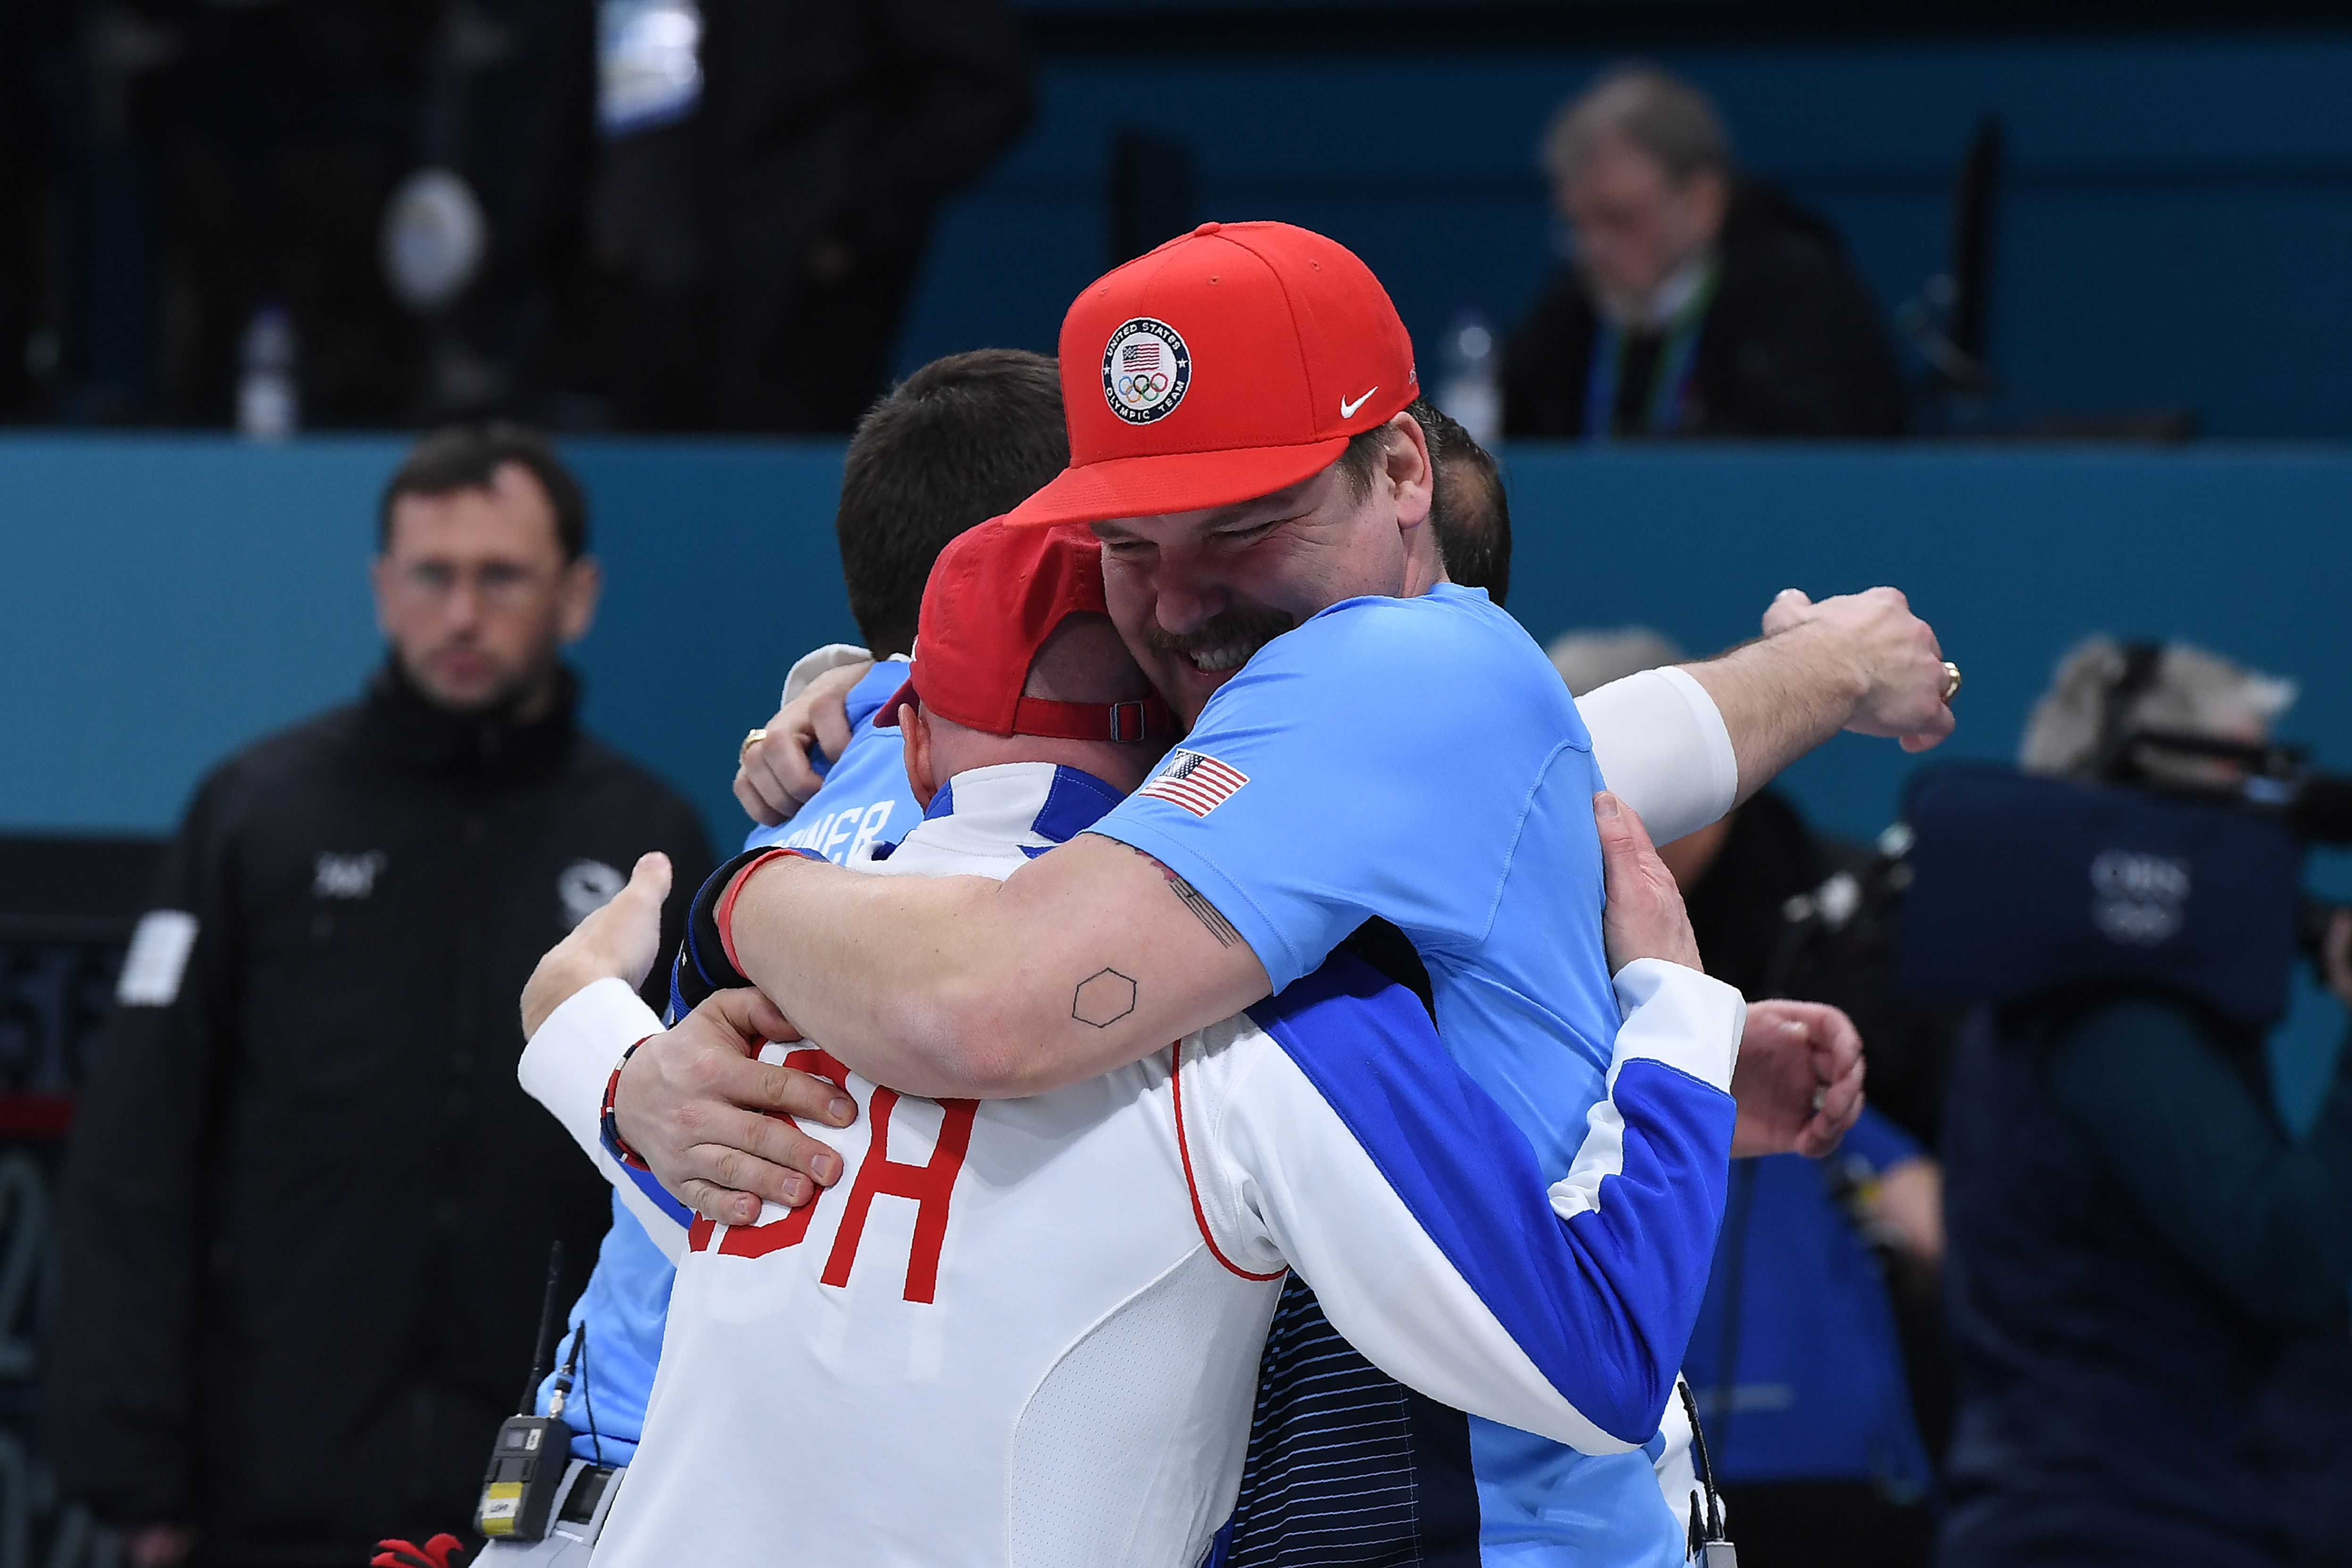 Curling-Champions-U.S.-Mens-Curling-Team-Wins-First-Ever-Team-USA-Gold-In-Huge-Upset